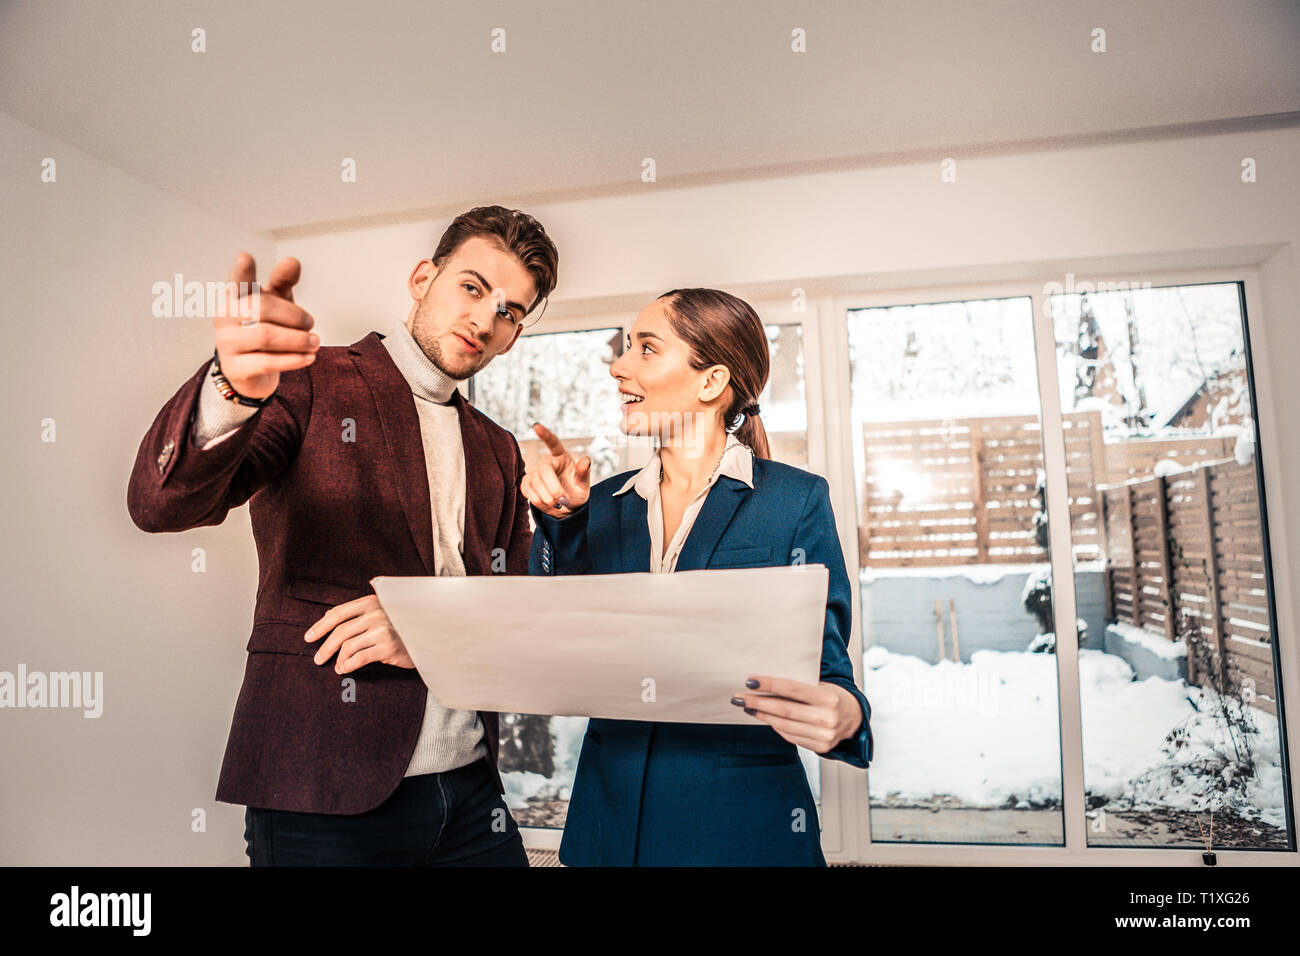 Handsome businessman asking questions to professional realtor - Stock Image